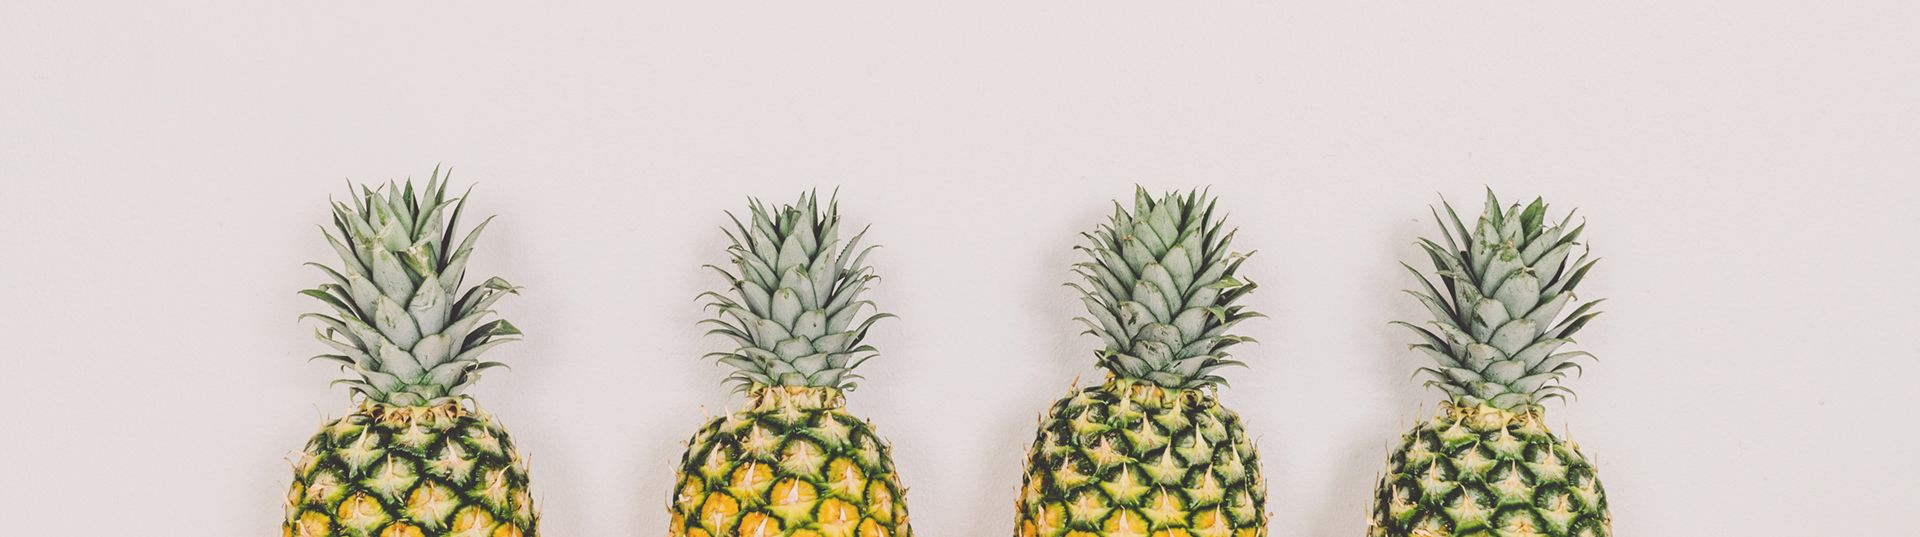 Hawaii SHIP Pineapple Background Image